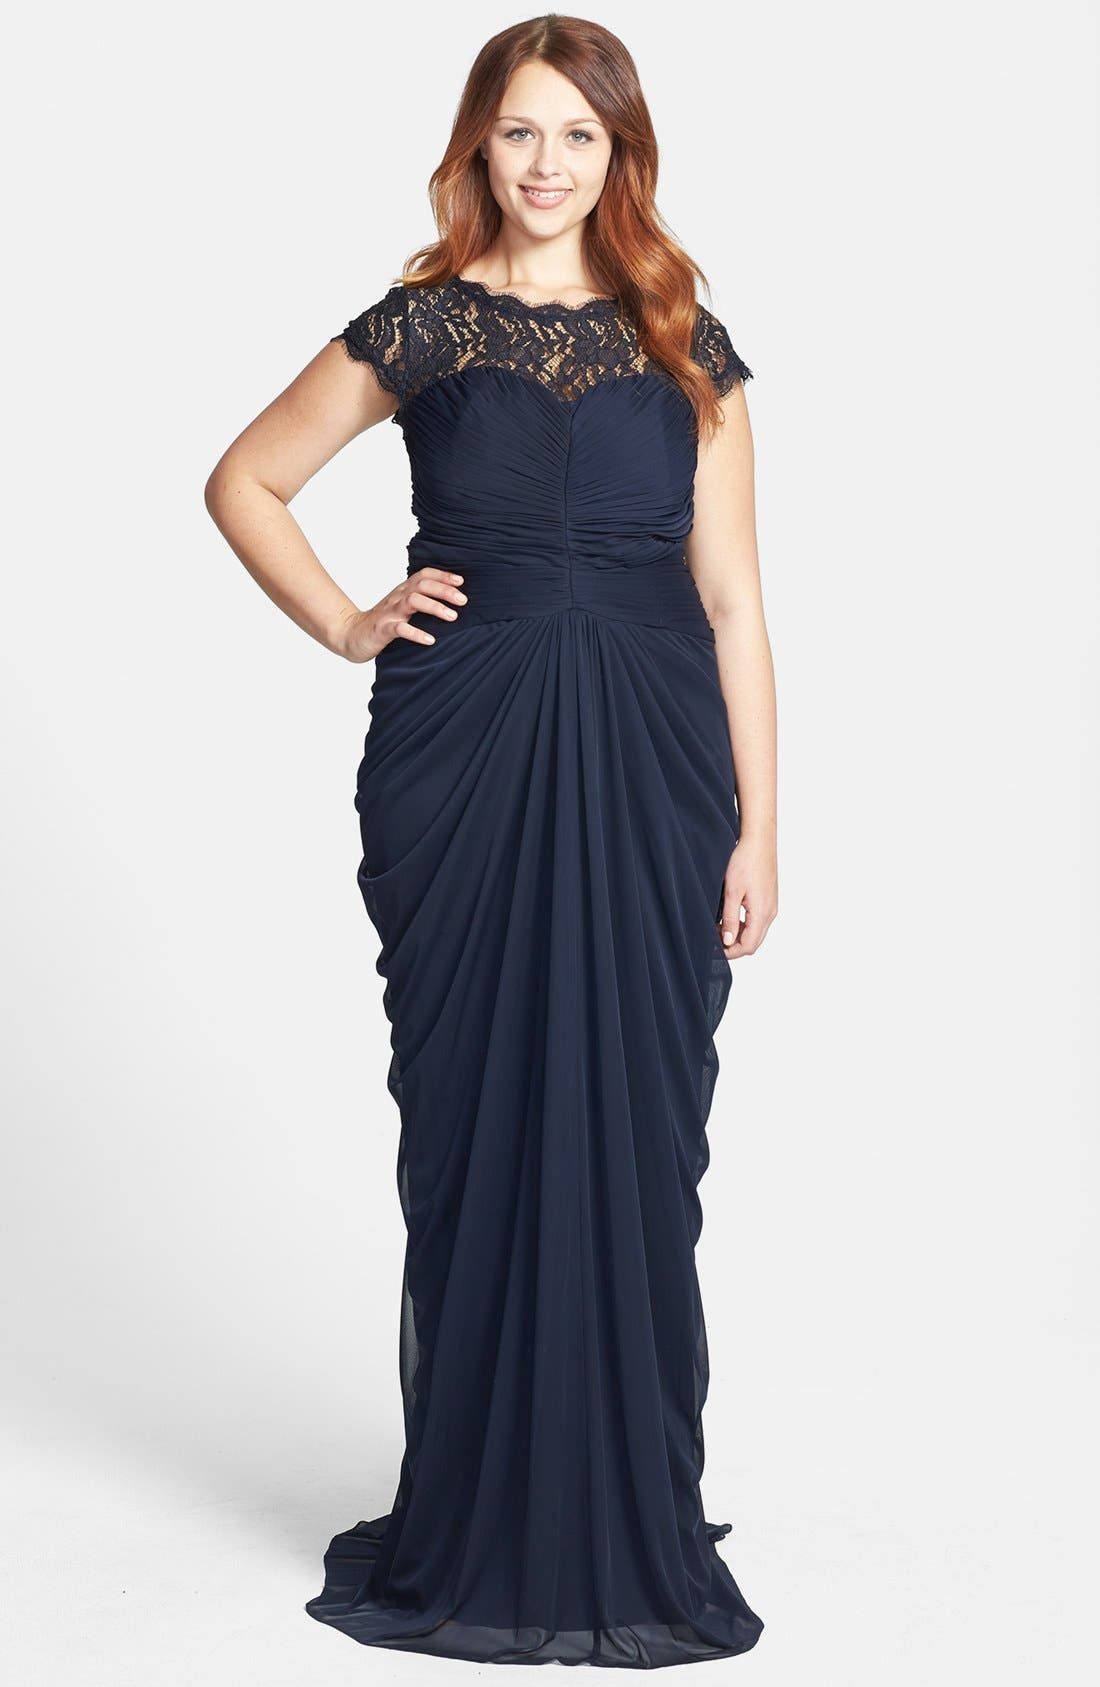 Main Image - Adrianna Papell Lace Yoke Drape Mesh Gown